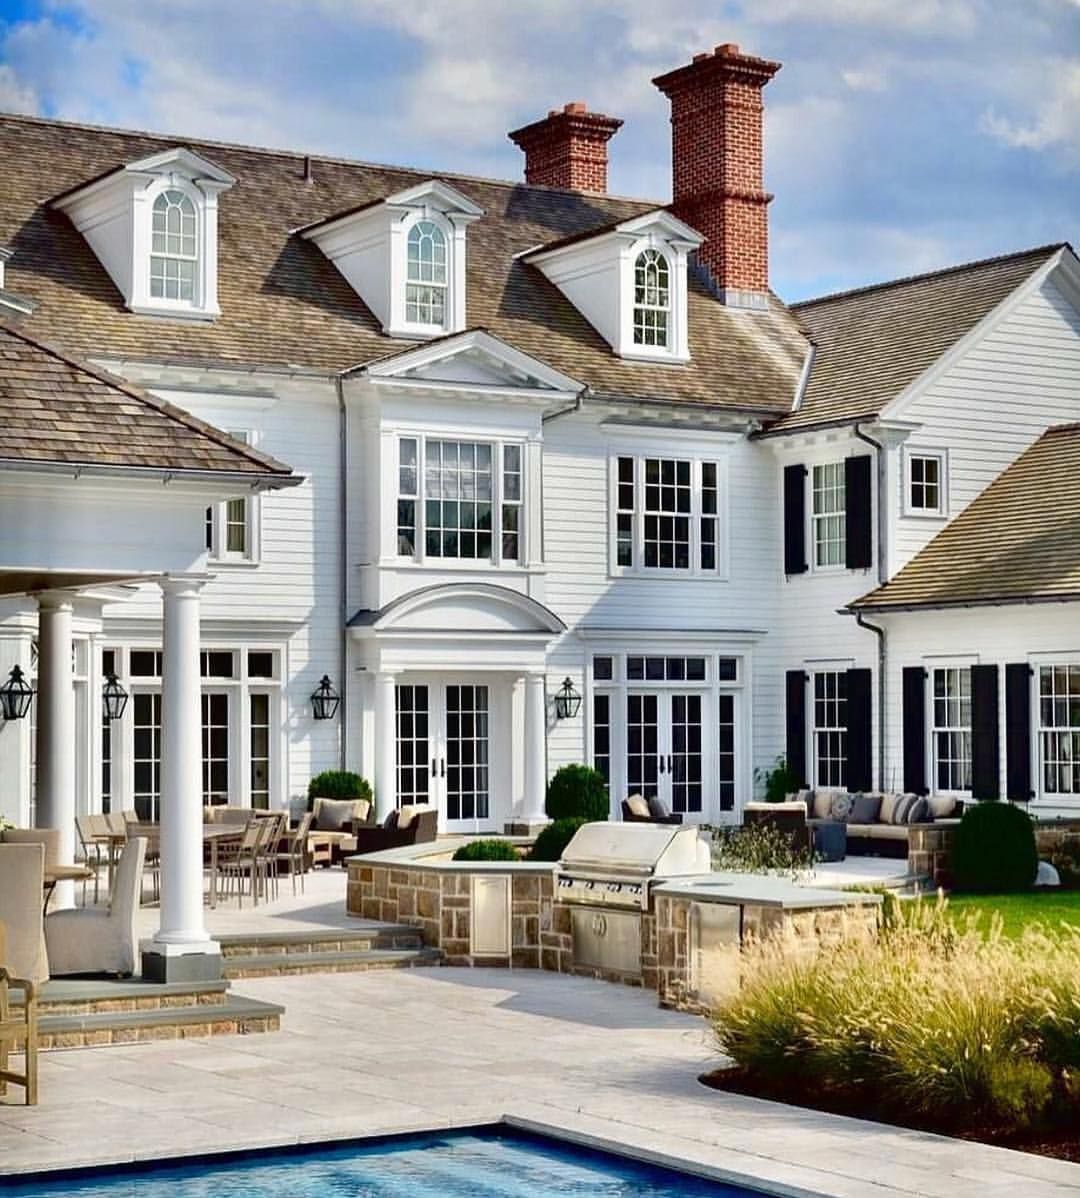 2 625 Likes 49 Comments Jennifer Todryk Author Theramblingredhead On Instagram Instead Of Watching T Preppy House Dream House Exterior House Exterior